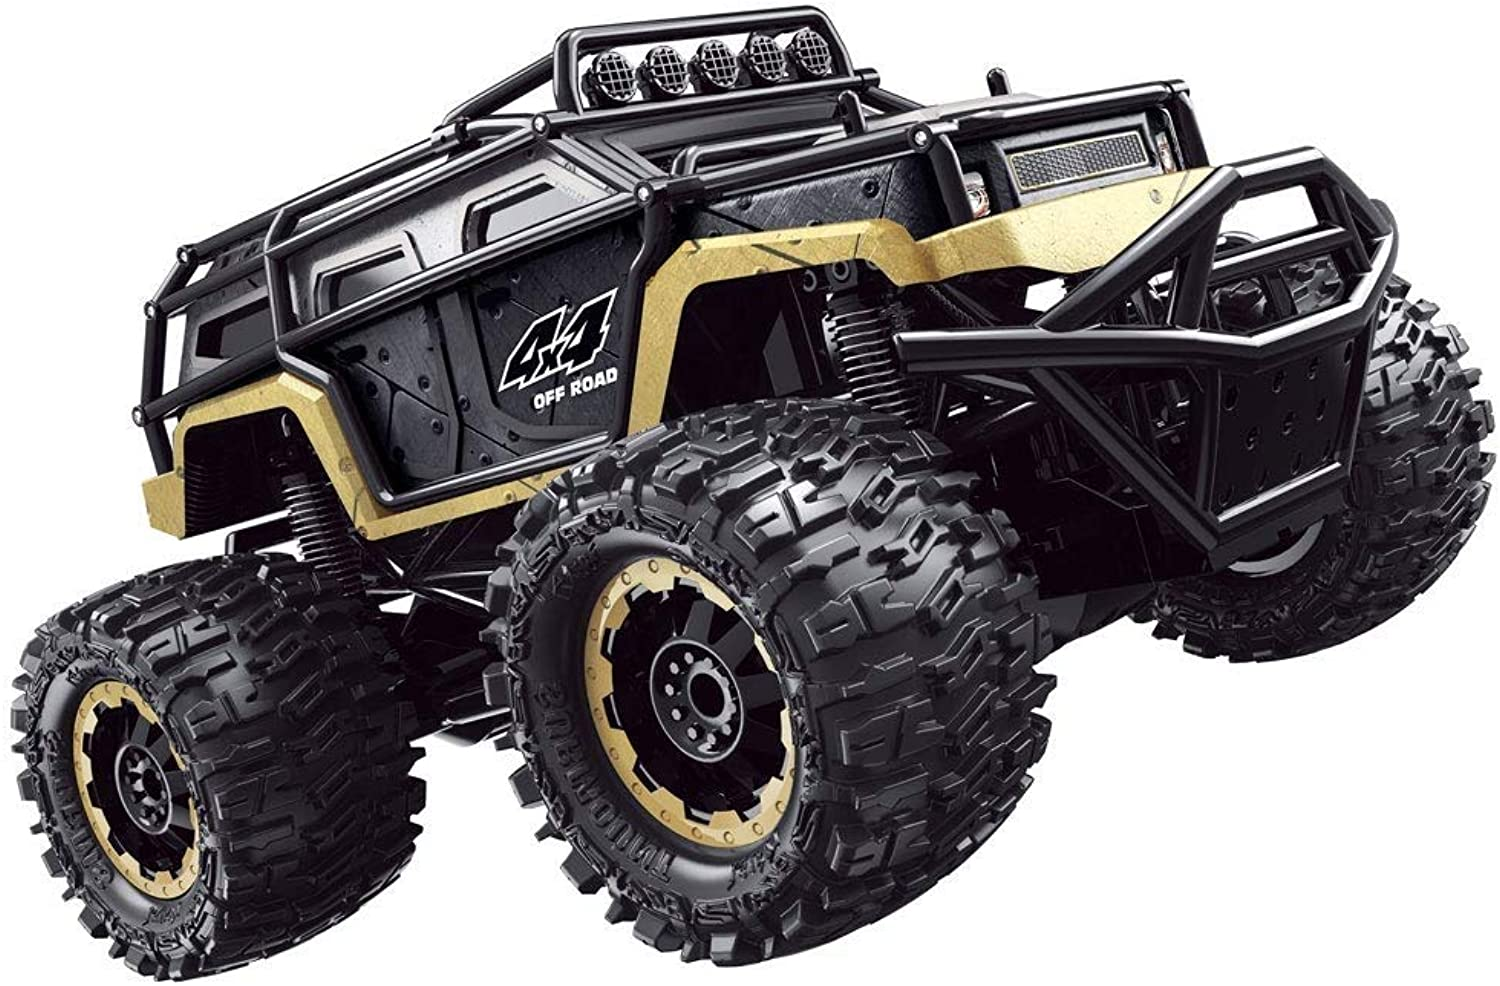 Tritow Oversized Profession Four-wheel Drive Bigfoot RC Car Simulation Beach Chargeable Wireless Trick Remote Control Car Climbing Off-road Mountain Car Boy Girl Gift For Kids 3+ (Size   1 battery)